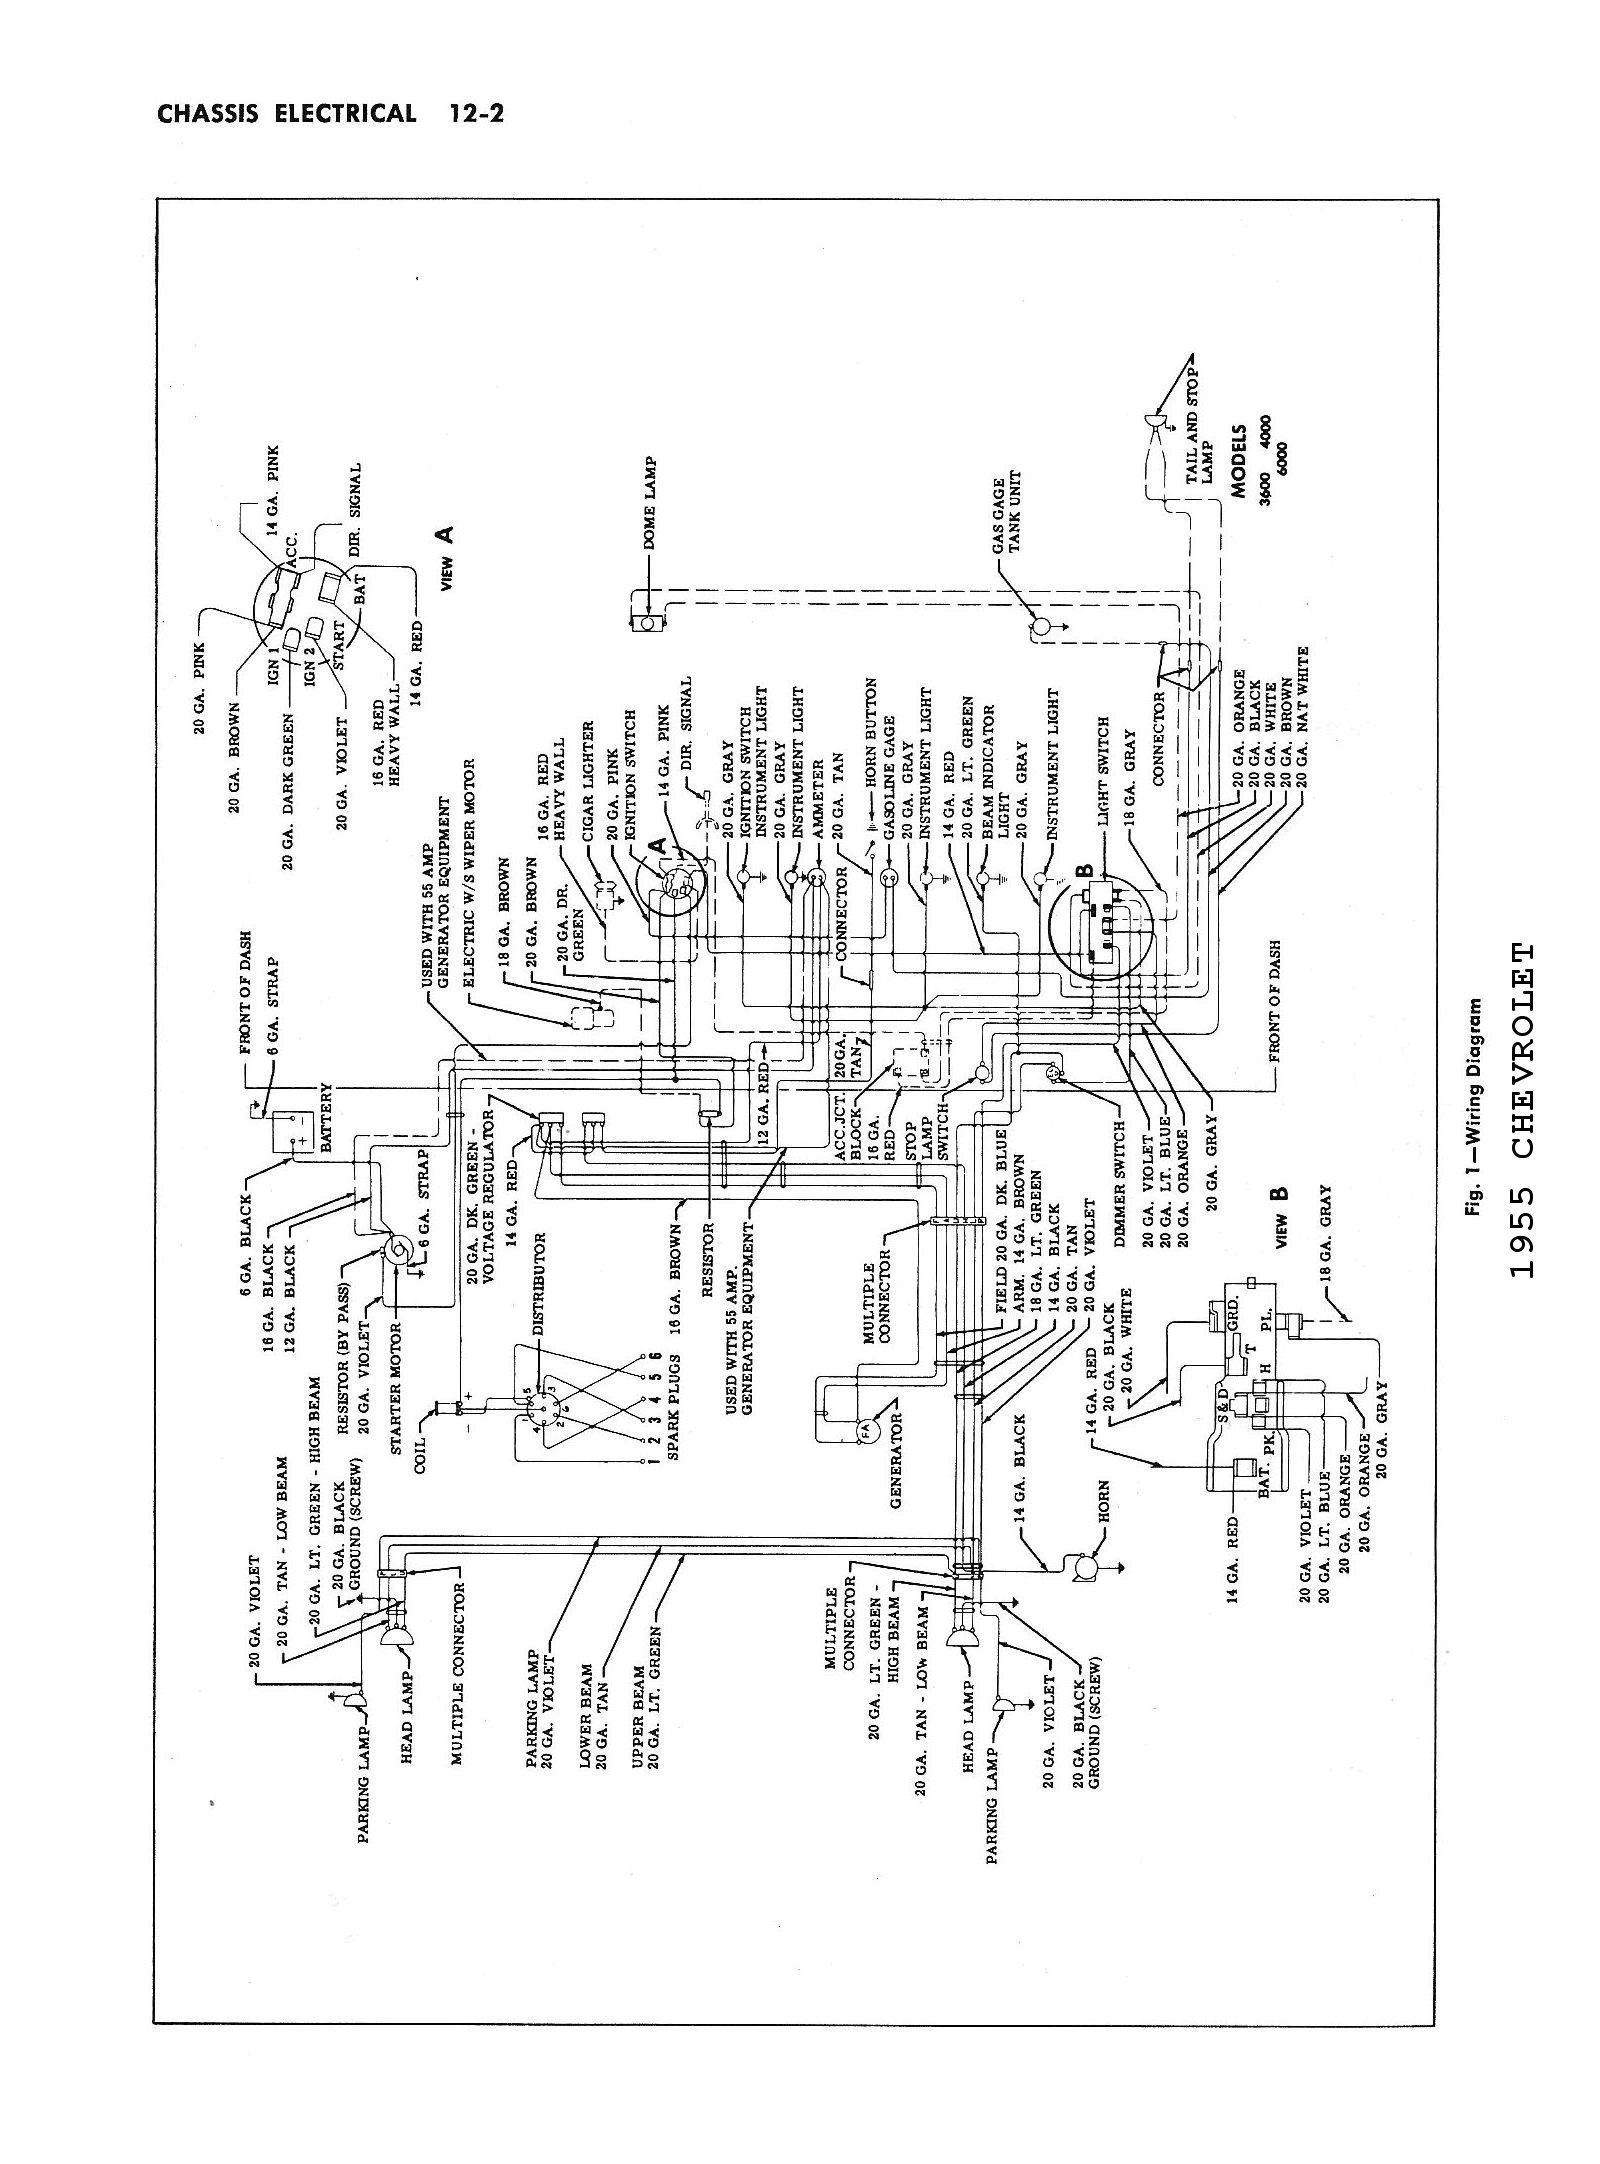 hight resolution of 55 chevy belair wiring diagram free picture wiring diagram source 1985 chevy truck wiring diagram 56 chevy belair wiring diagram